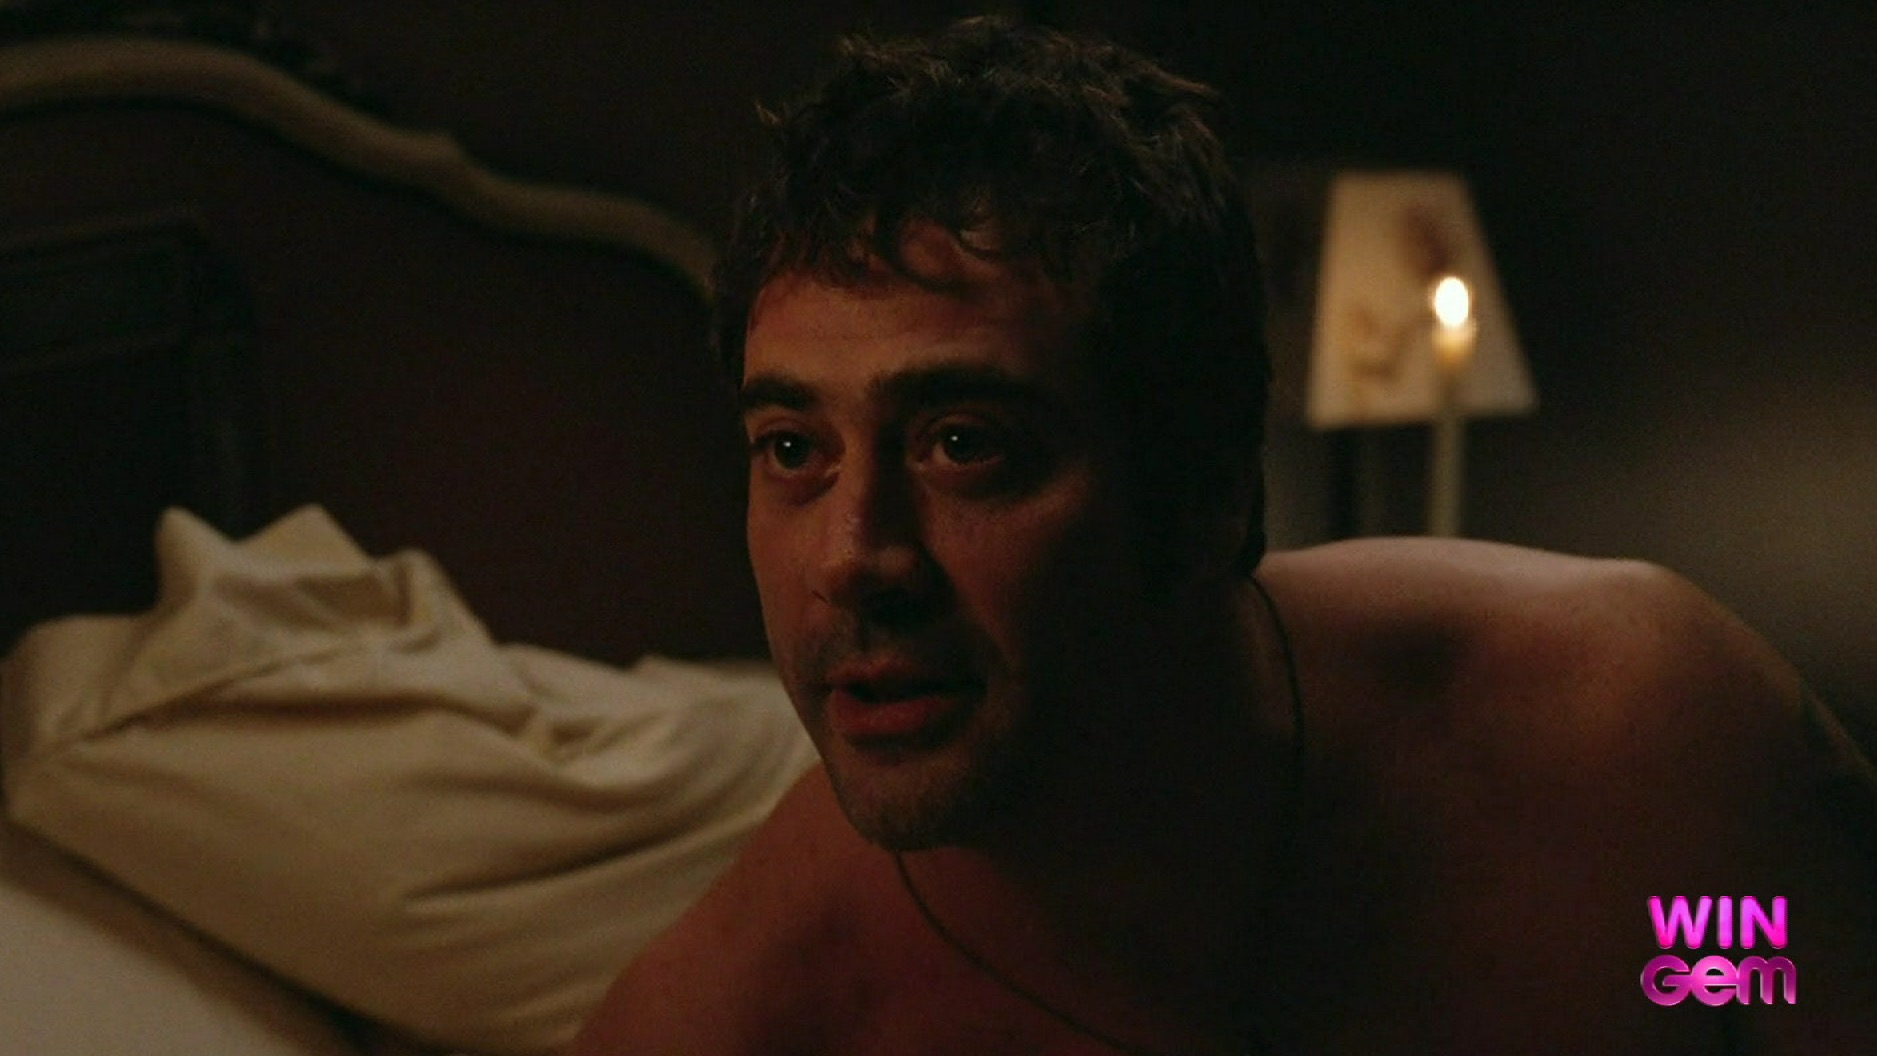 Naked jeffery dean morgan opinion